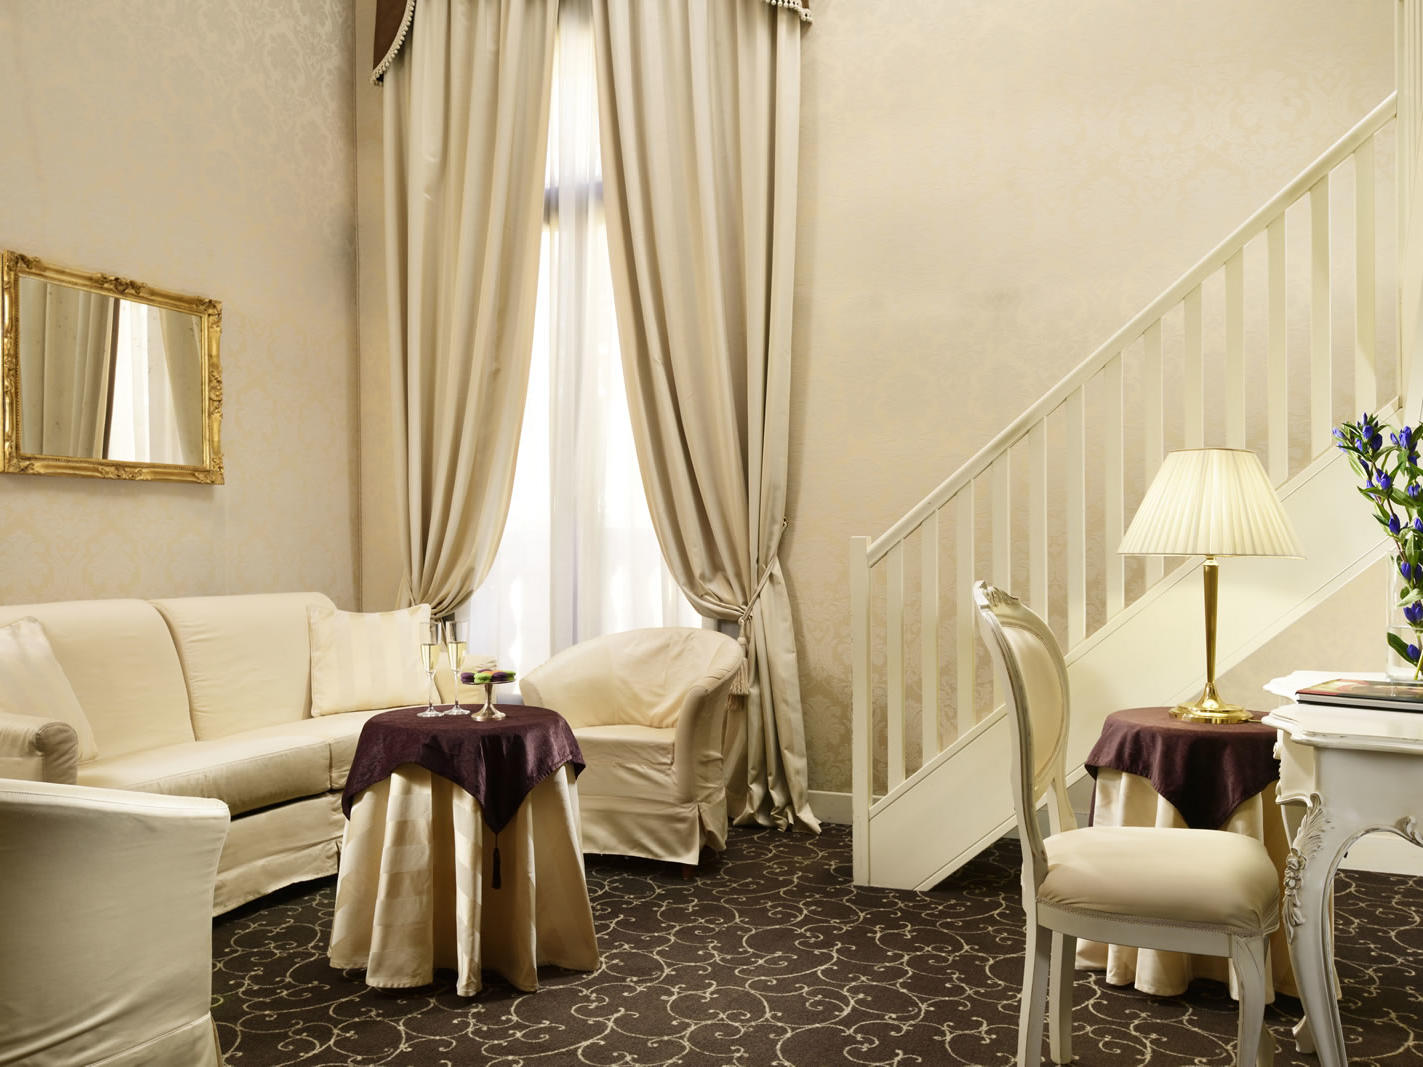 Junior Suite | Maison Venezia